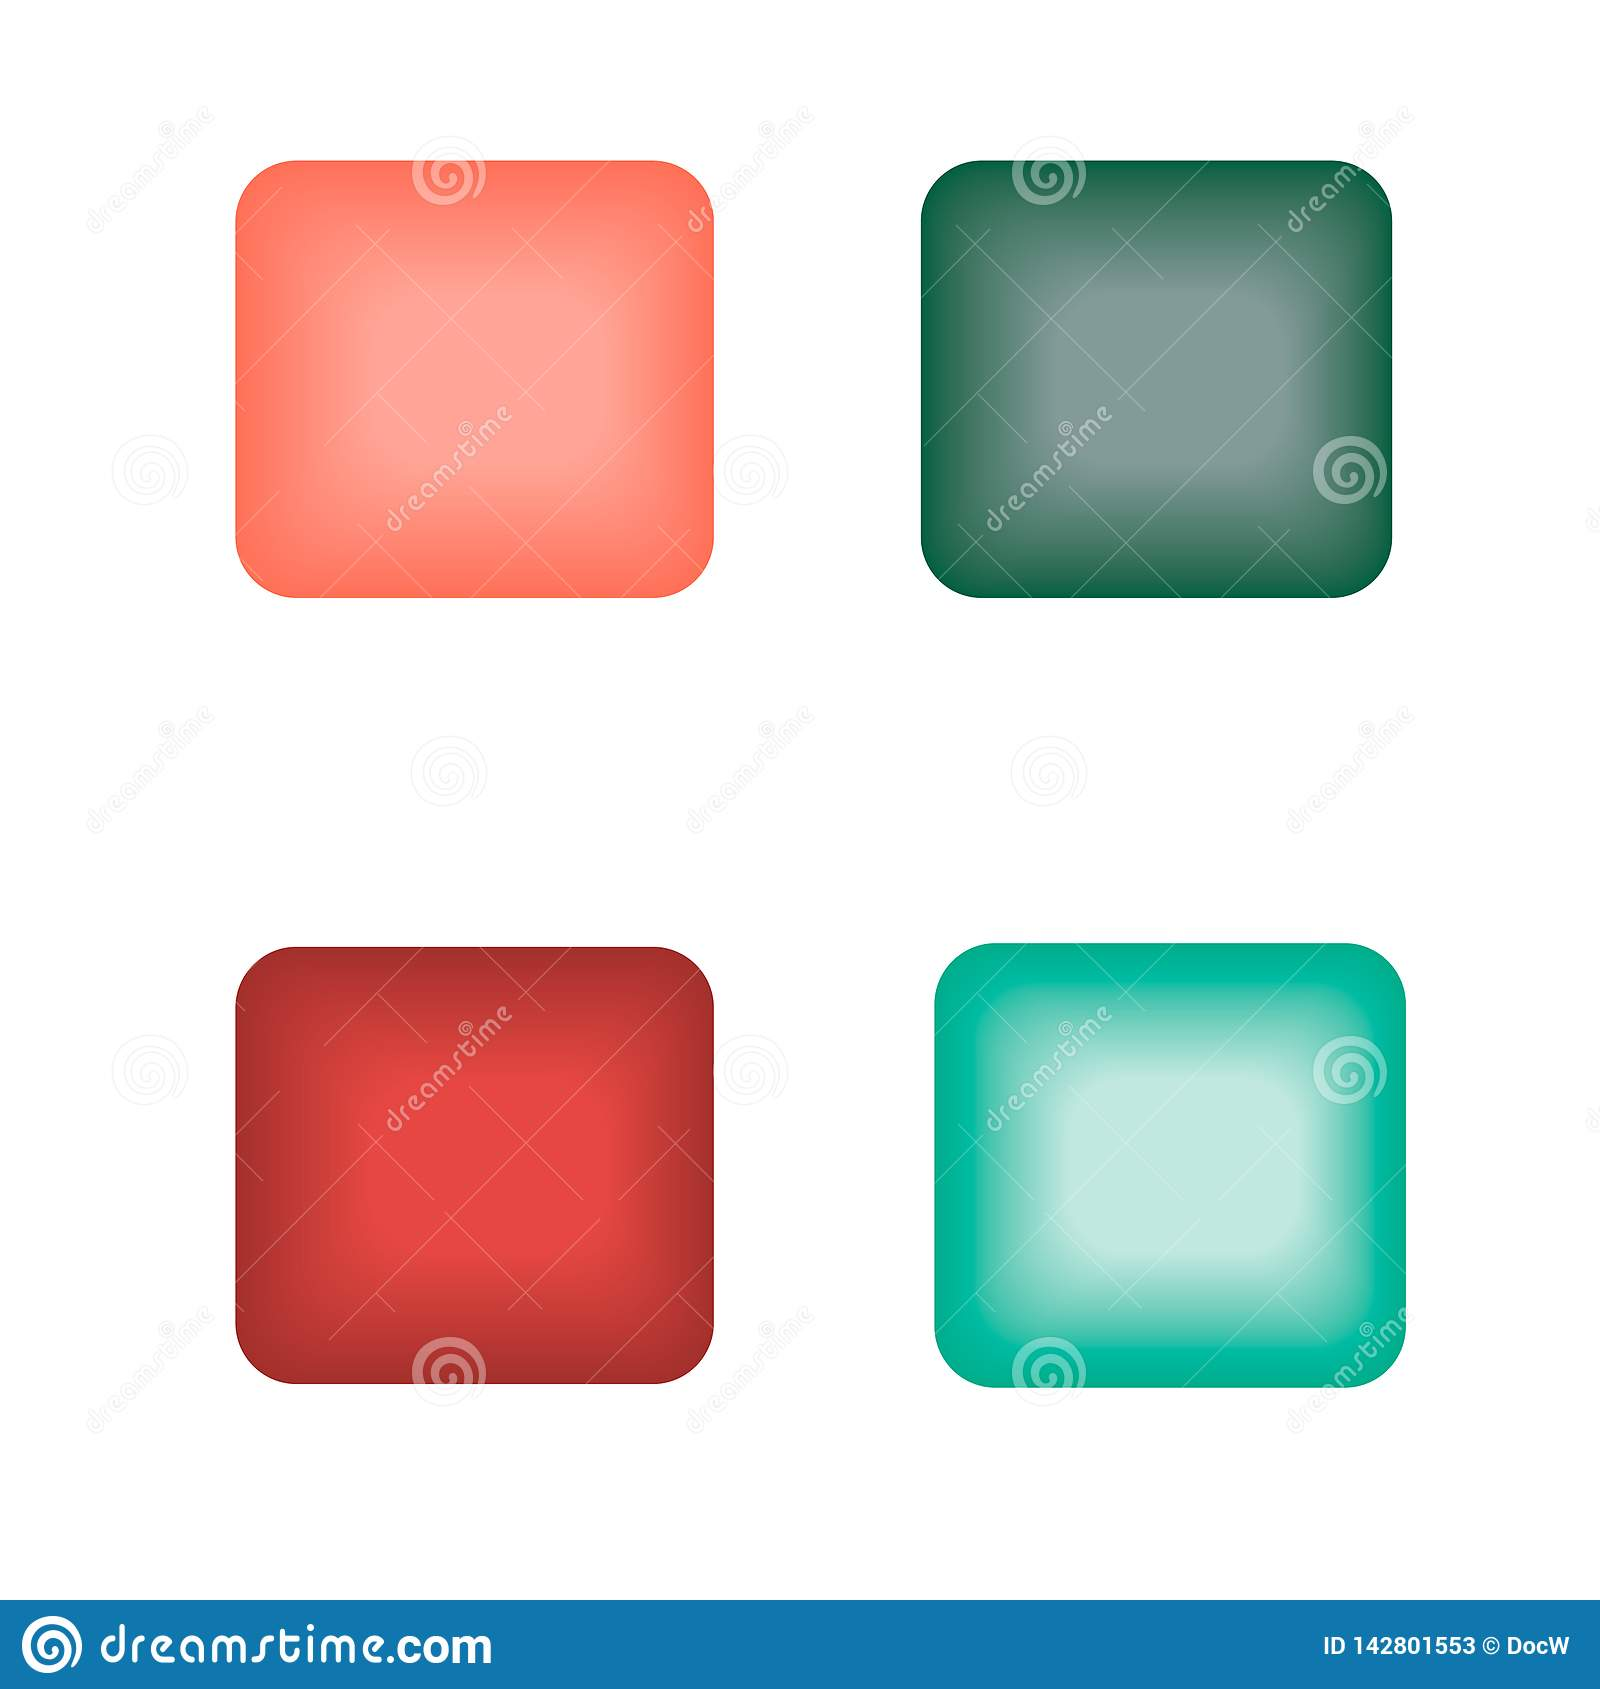 Square glowing buttons of different colors